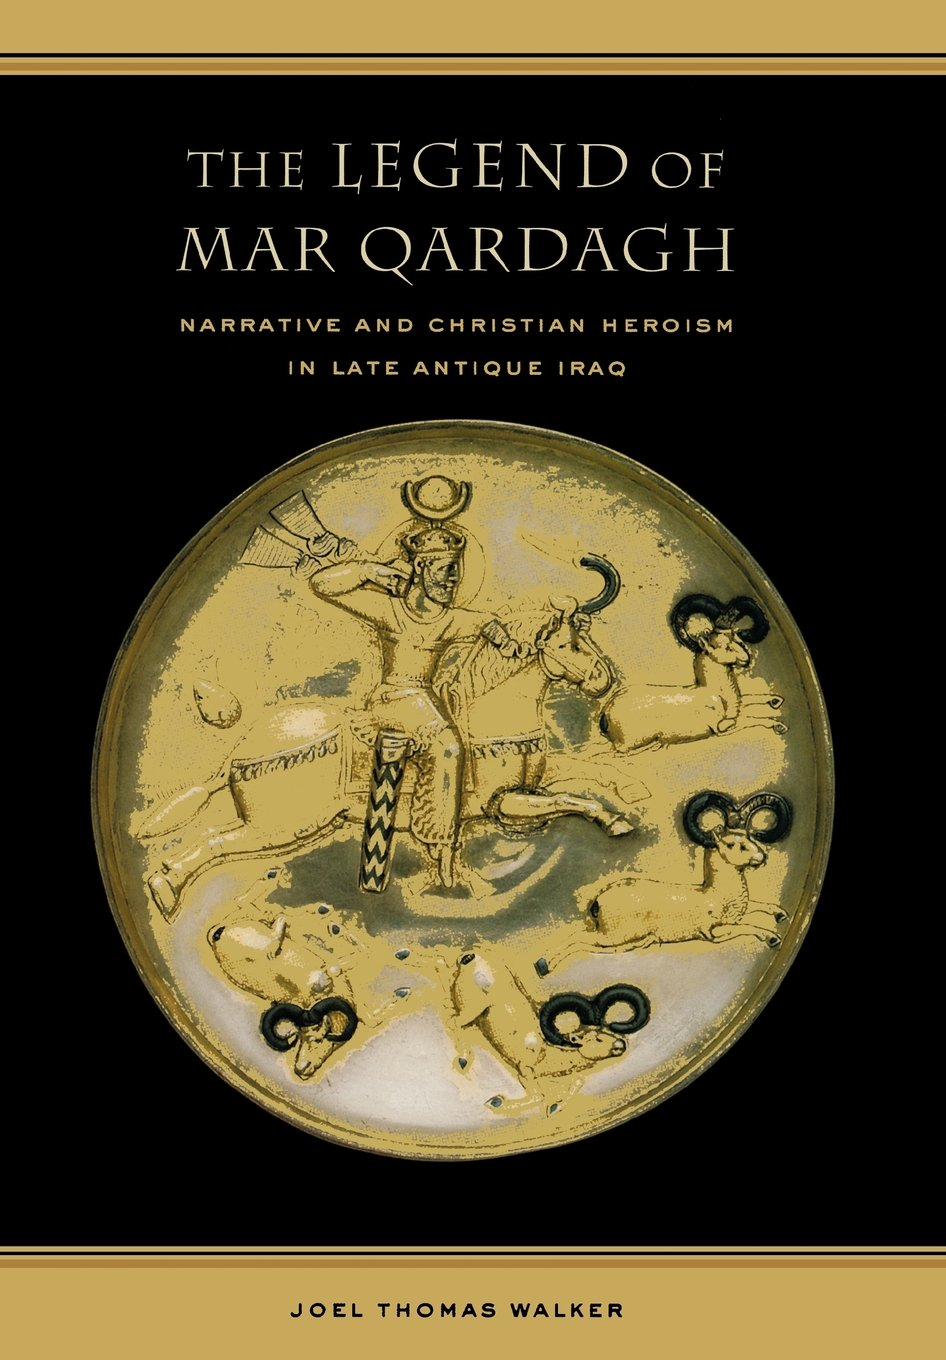 The Legend of Mar Qardagh: Narrative and Christian Heroism in Late Antique Iraq by University of California Press